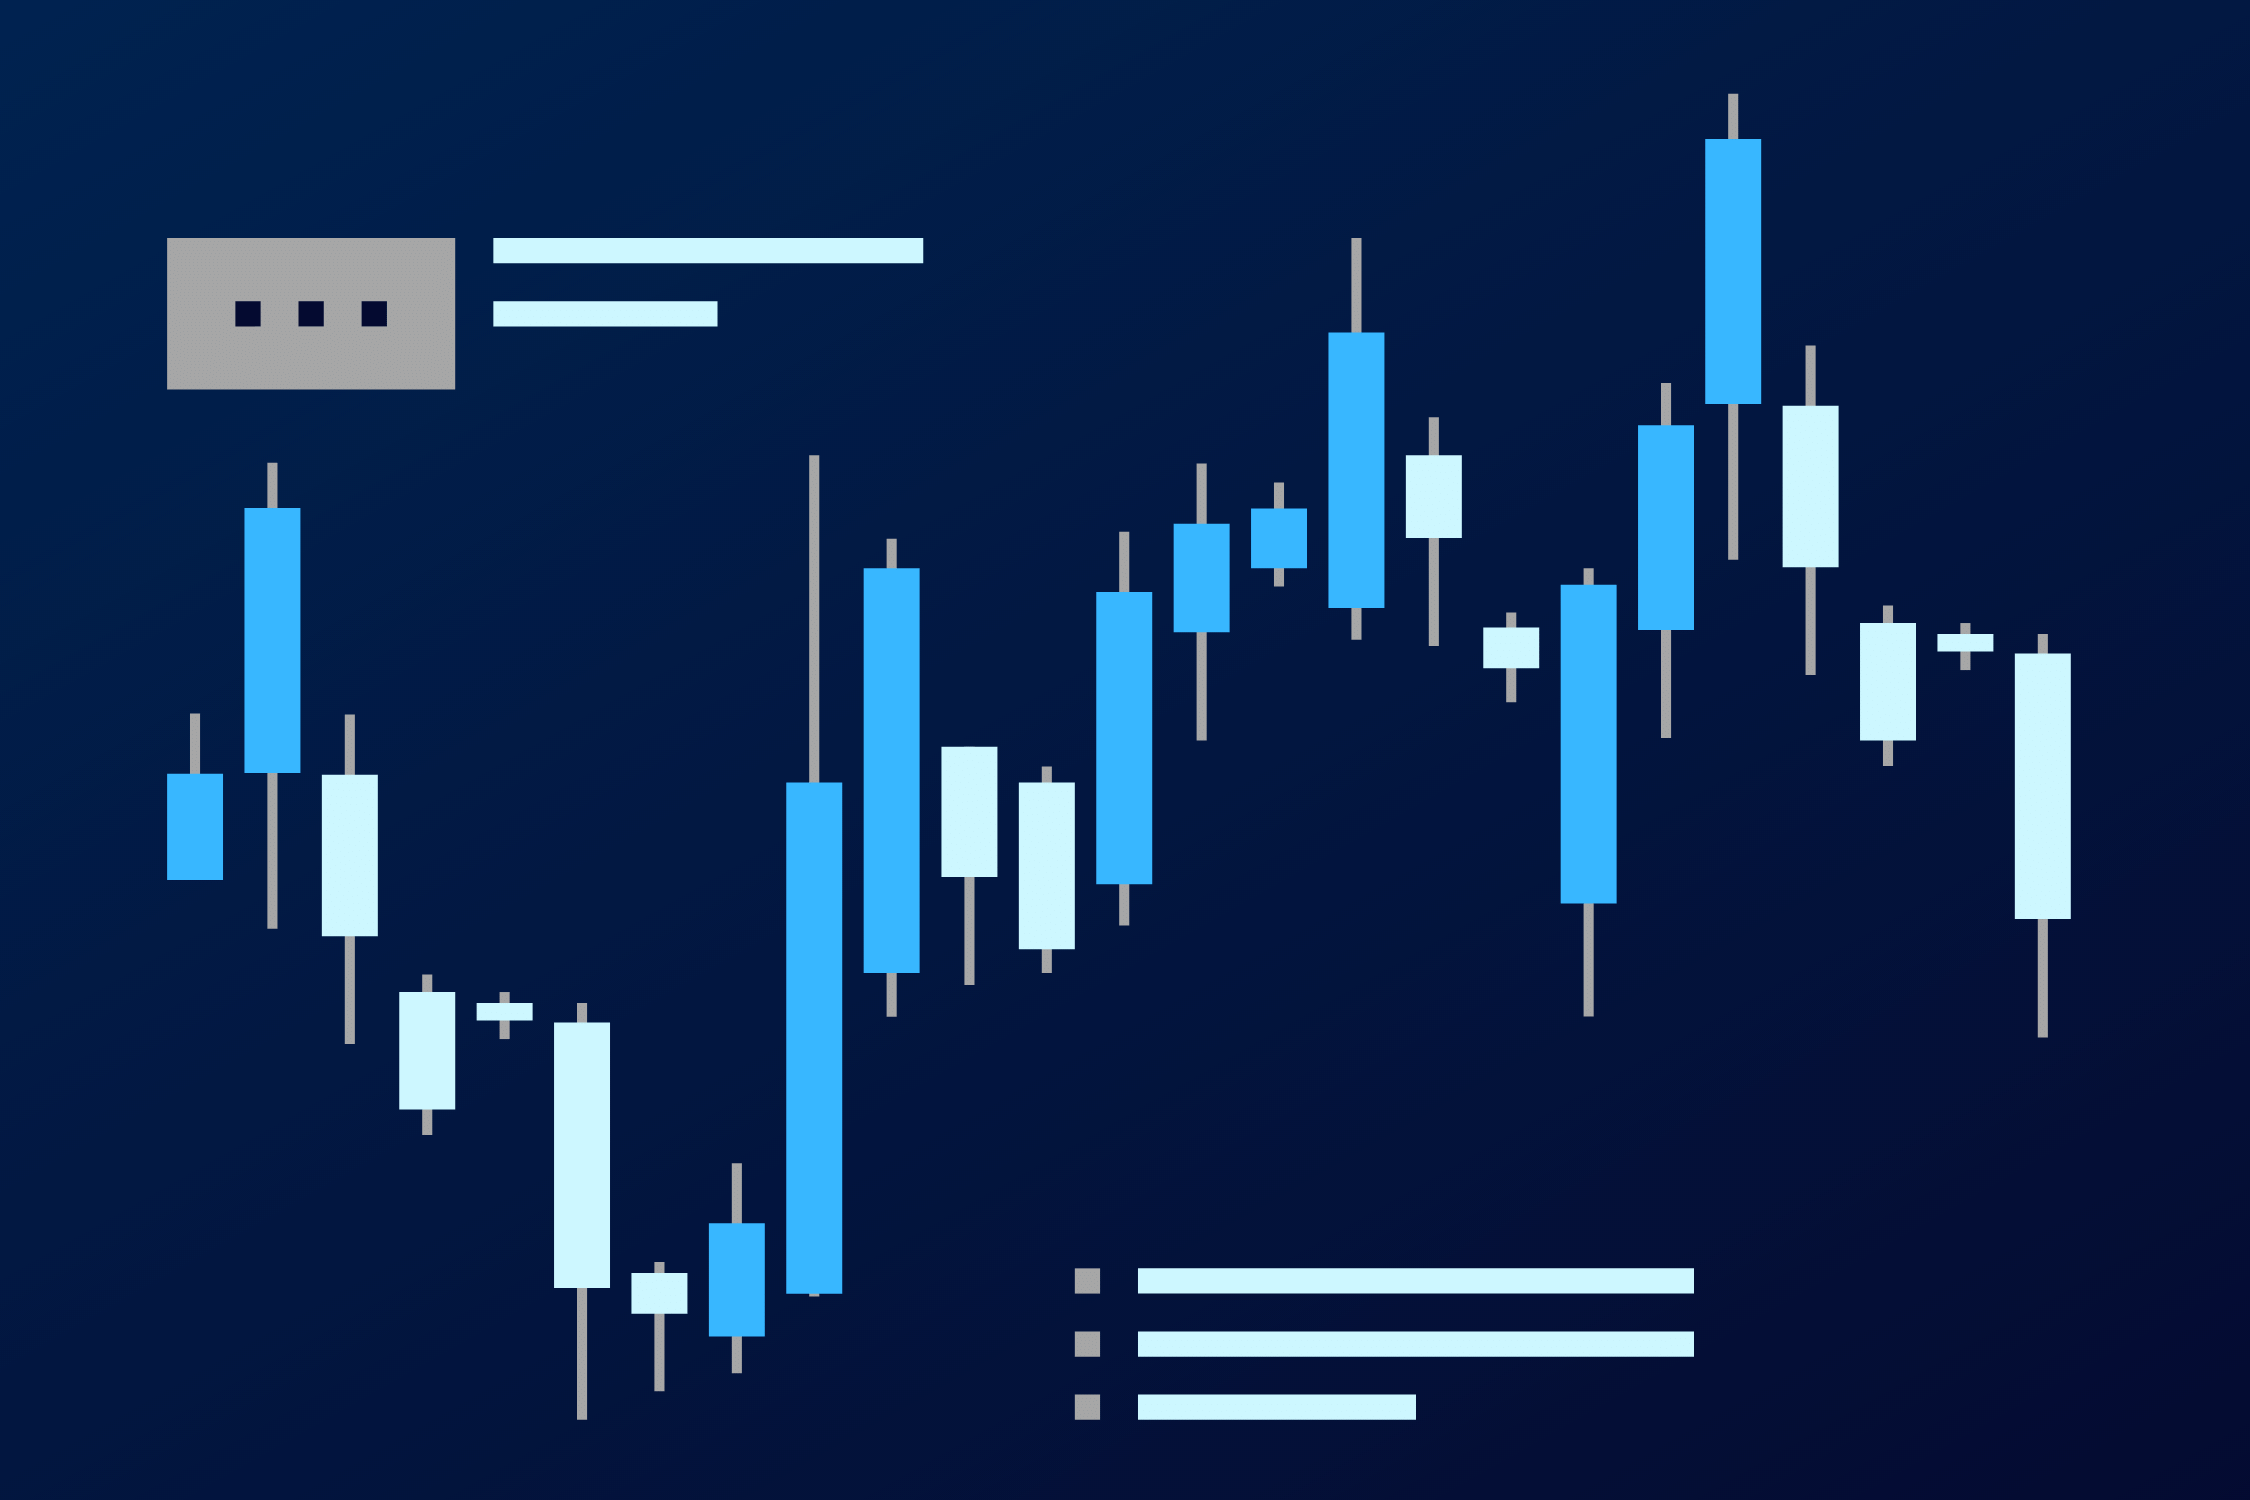 Stock Trading | Graphic by Dylan Collison | The Wright State Guardian